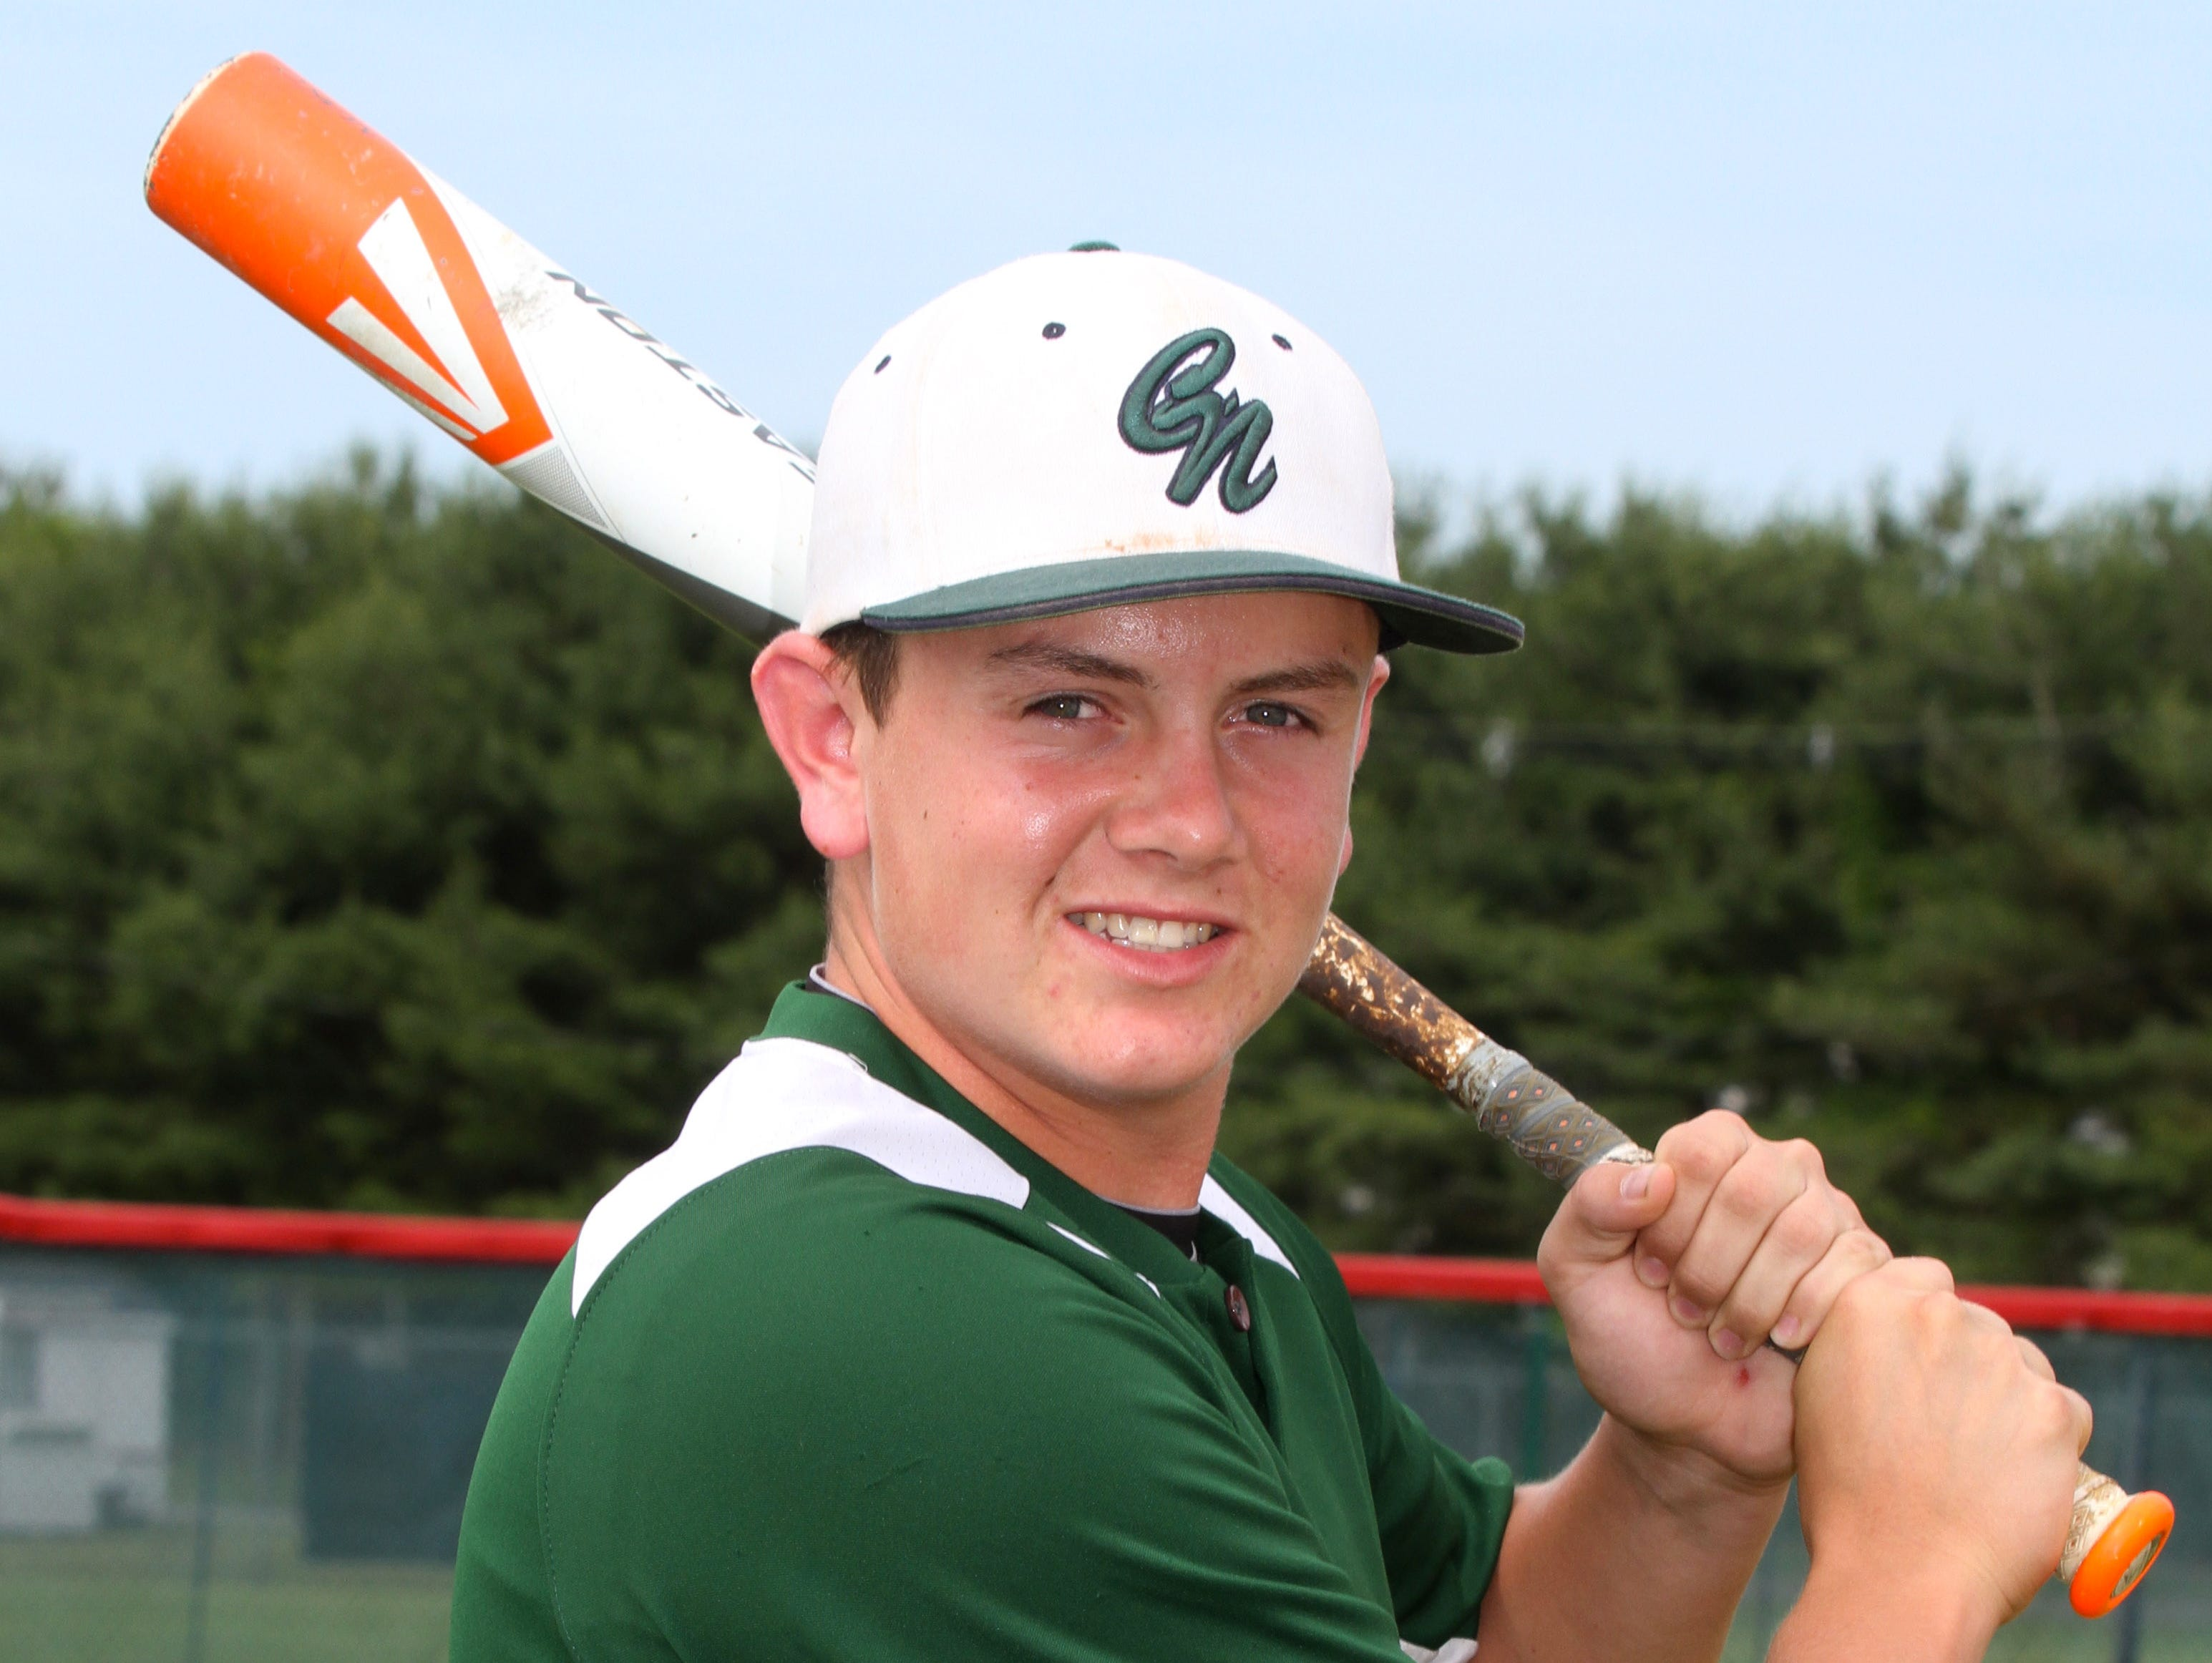 Tyler Kapuscisnki of Colts Neck has committed to play at Marist.